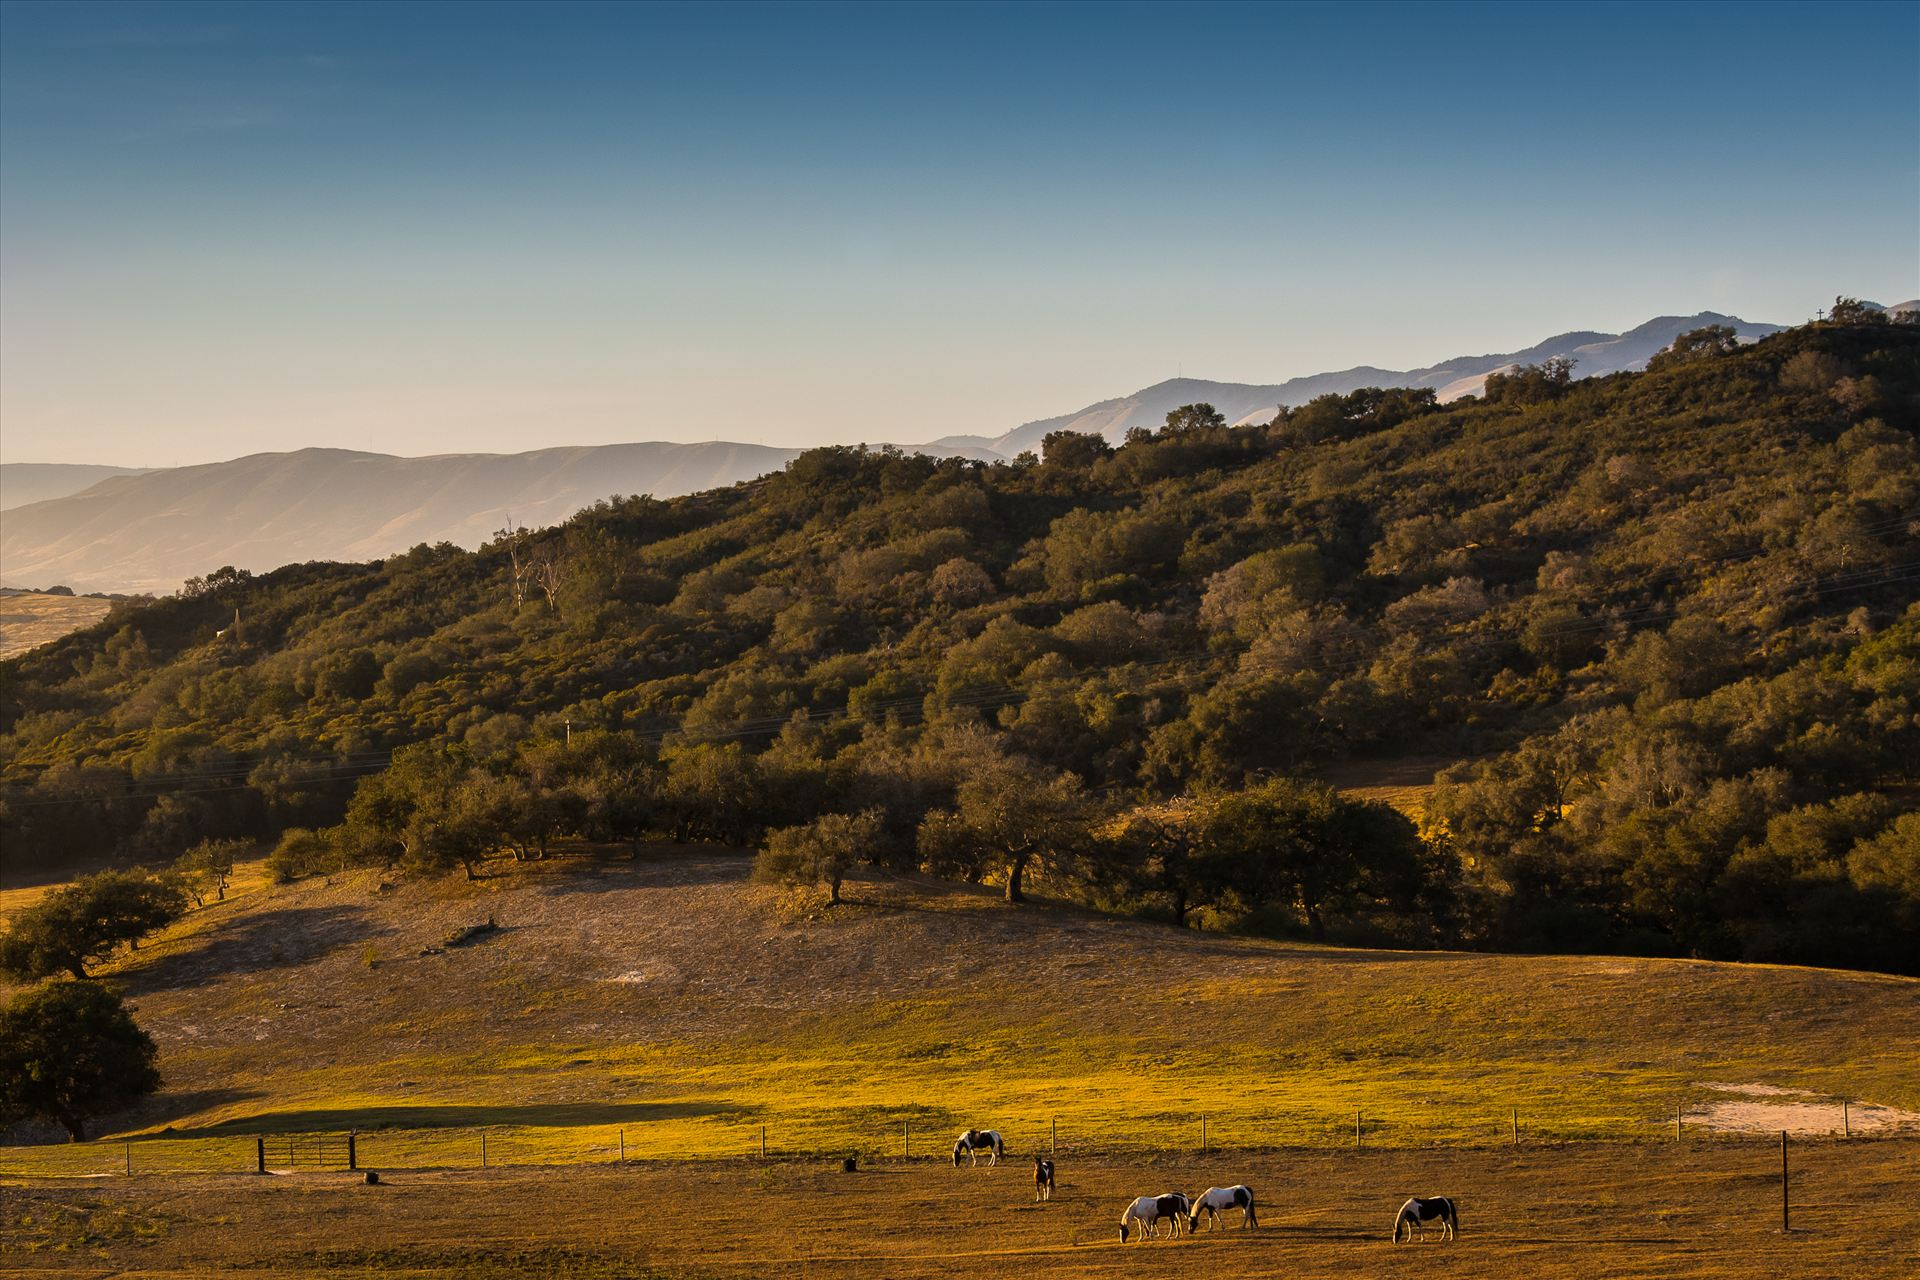 Grazing at Sunset.jpg - Horses grazing in a golden field at sunset in Arroyo Grande, California by Sarah Williams